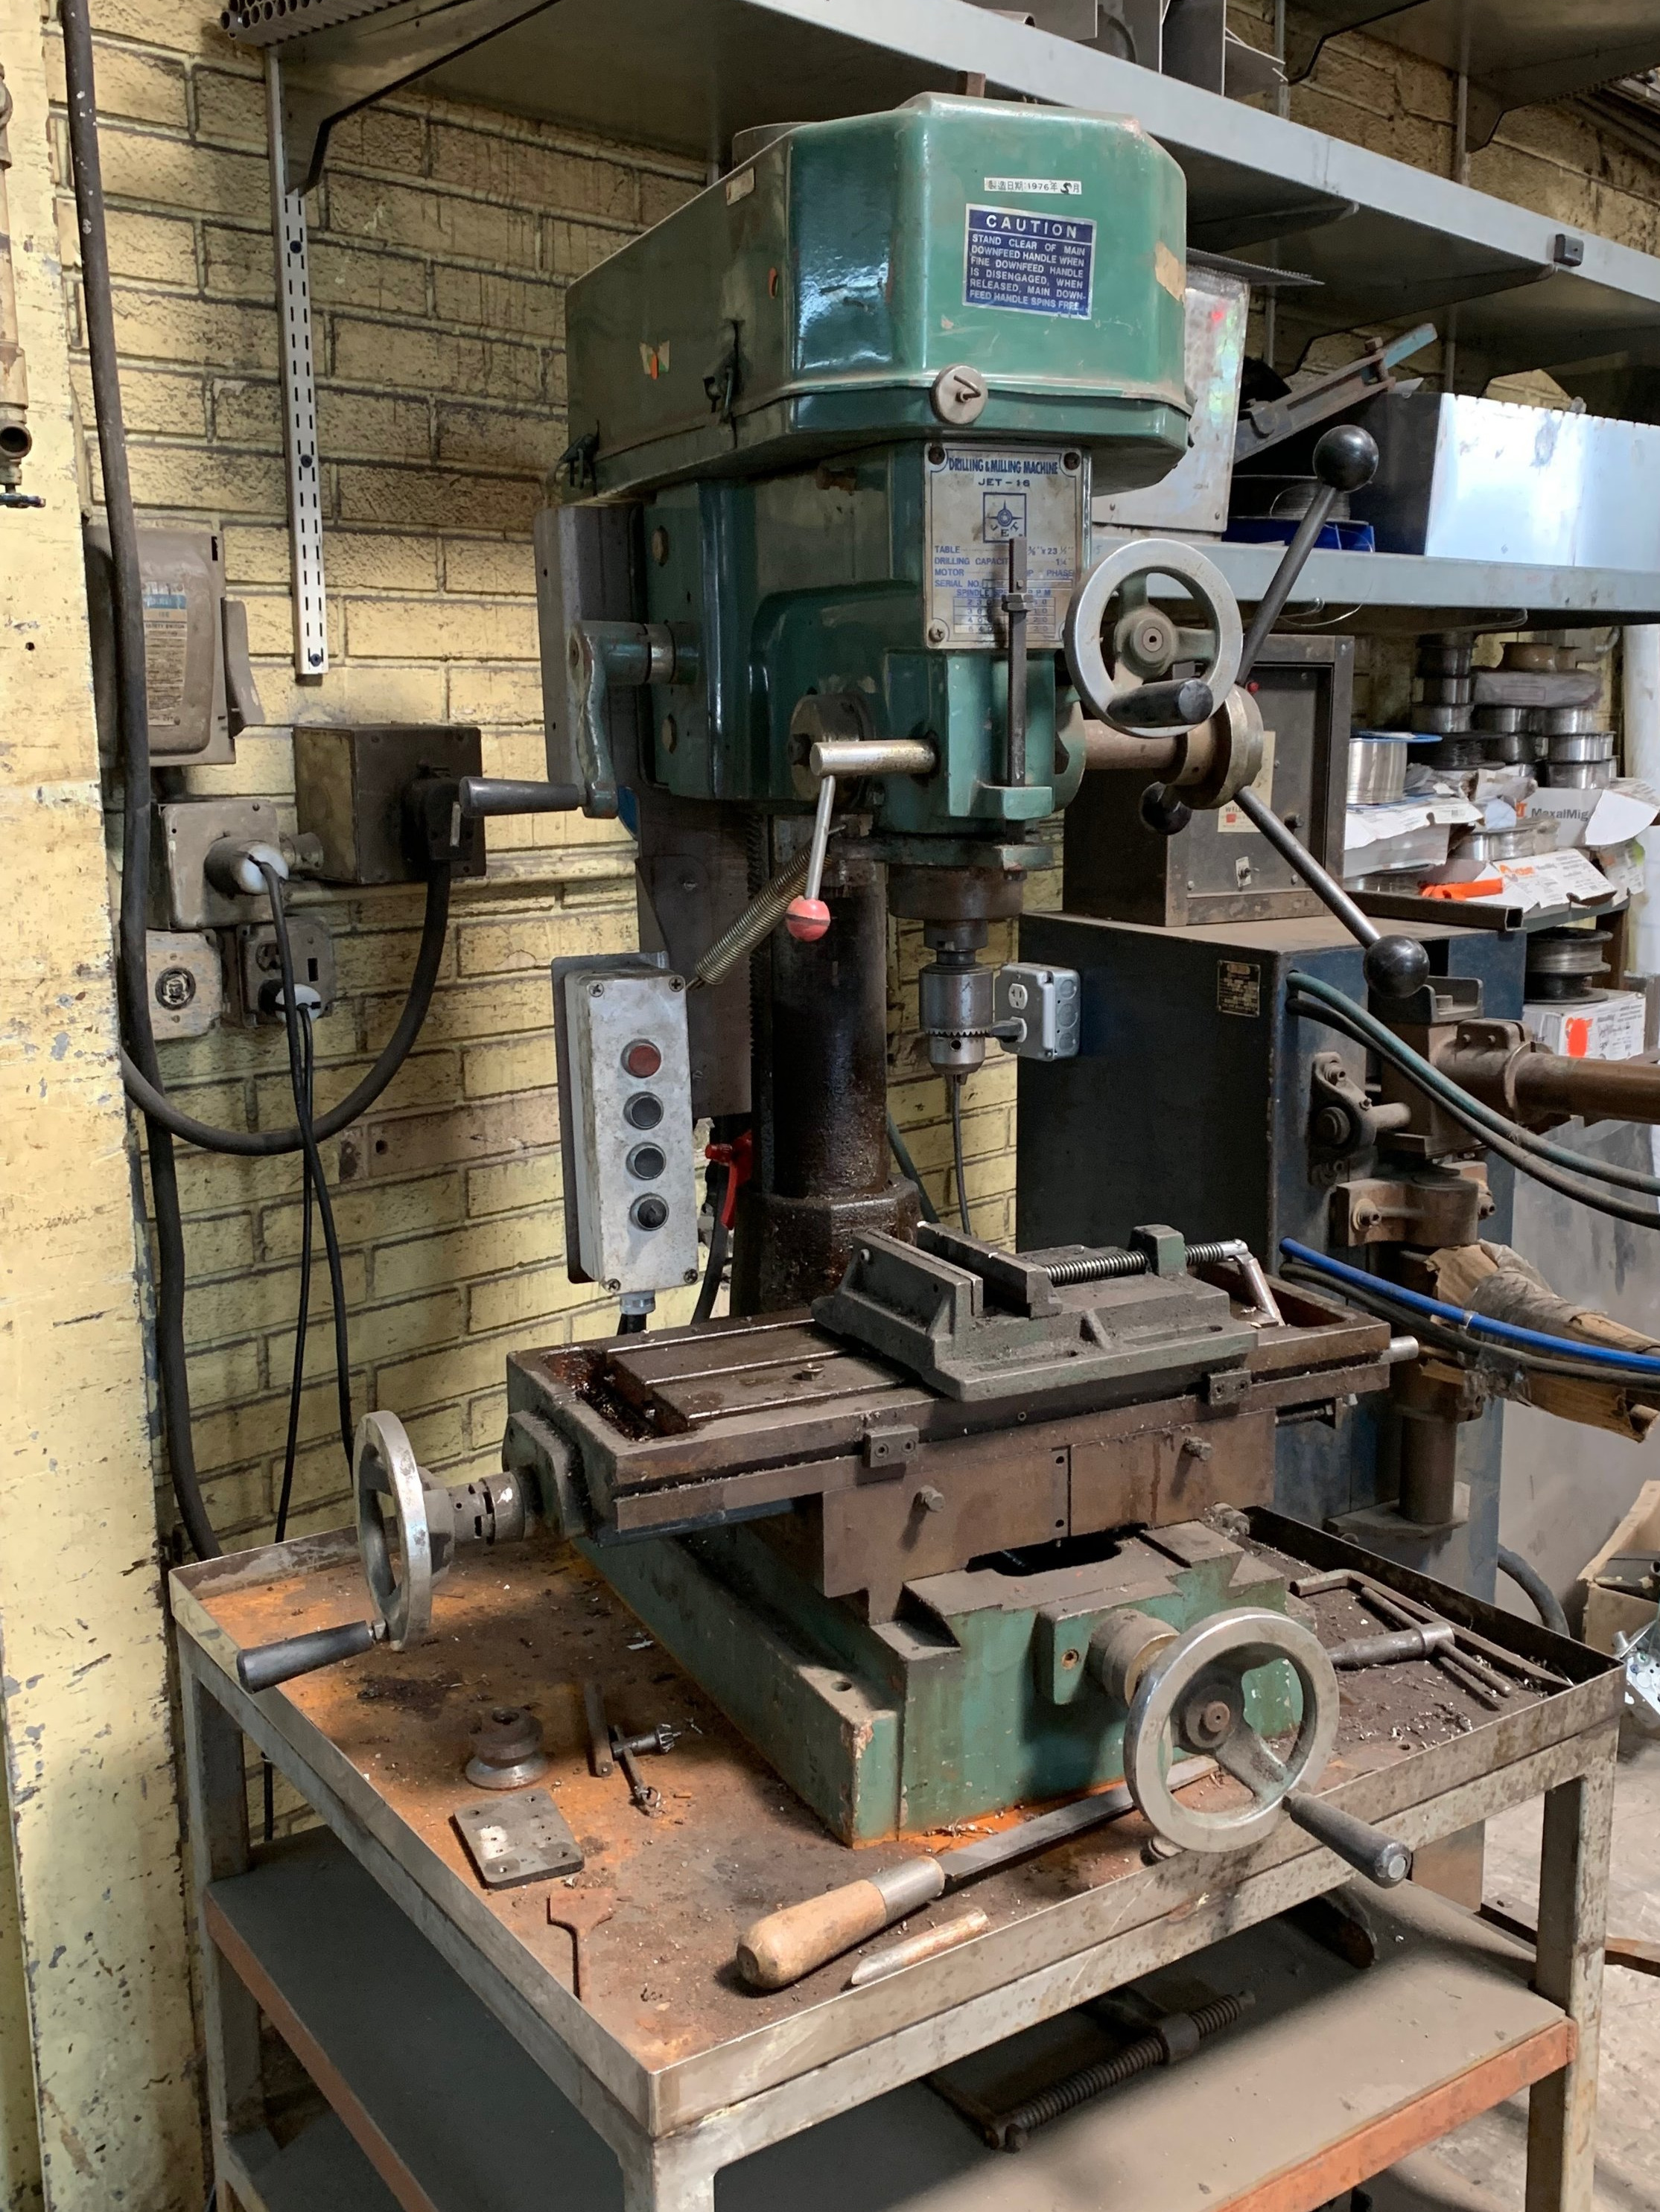 Drill Press - For drilling & tapping material